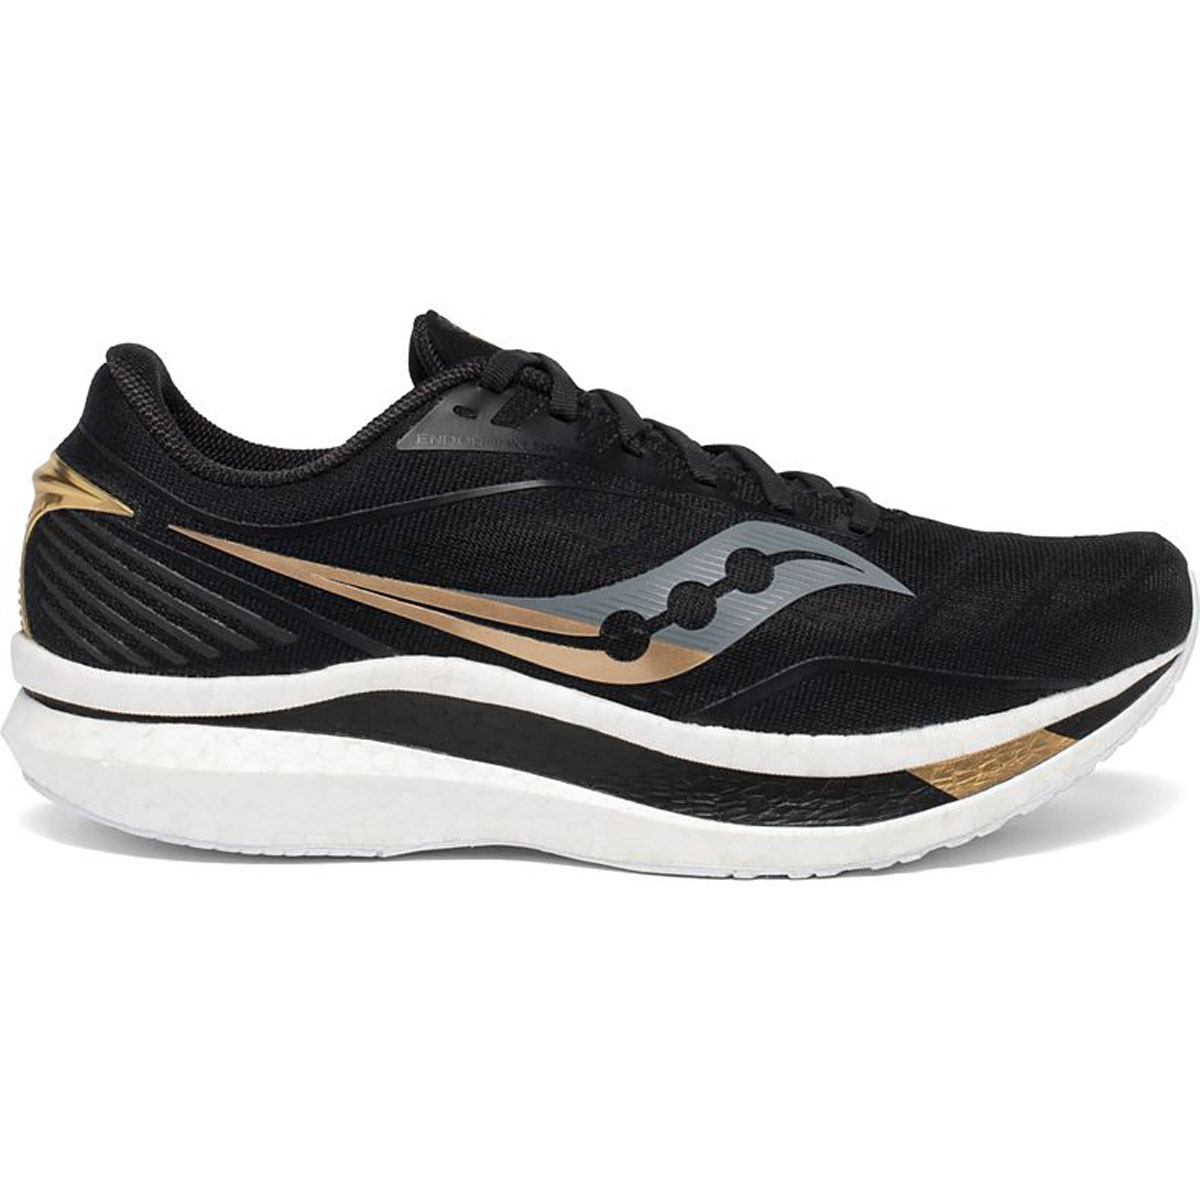 Men's Saucony Endorphin Speed Running Shoe - Color: Black/Gold - Size: 7 - Width: Regular, Black/Gold, large, image 1